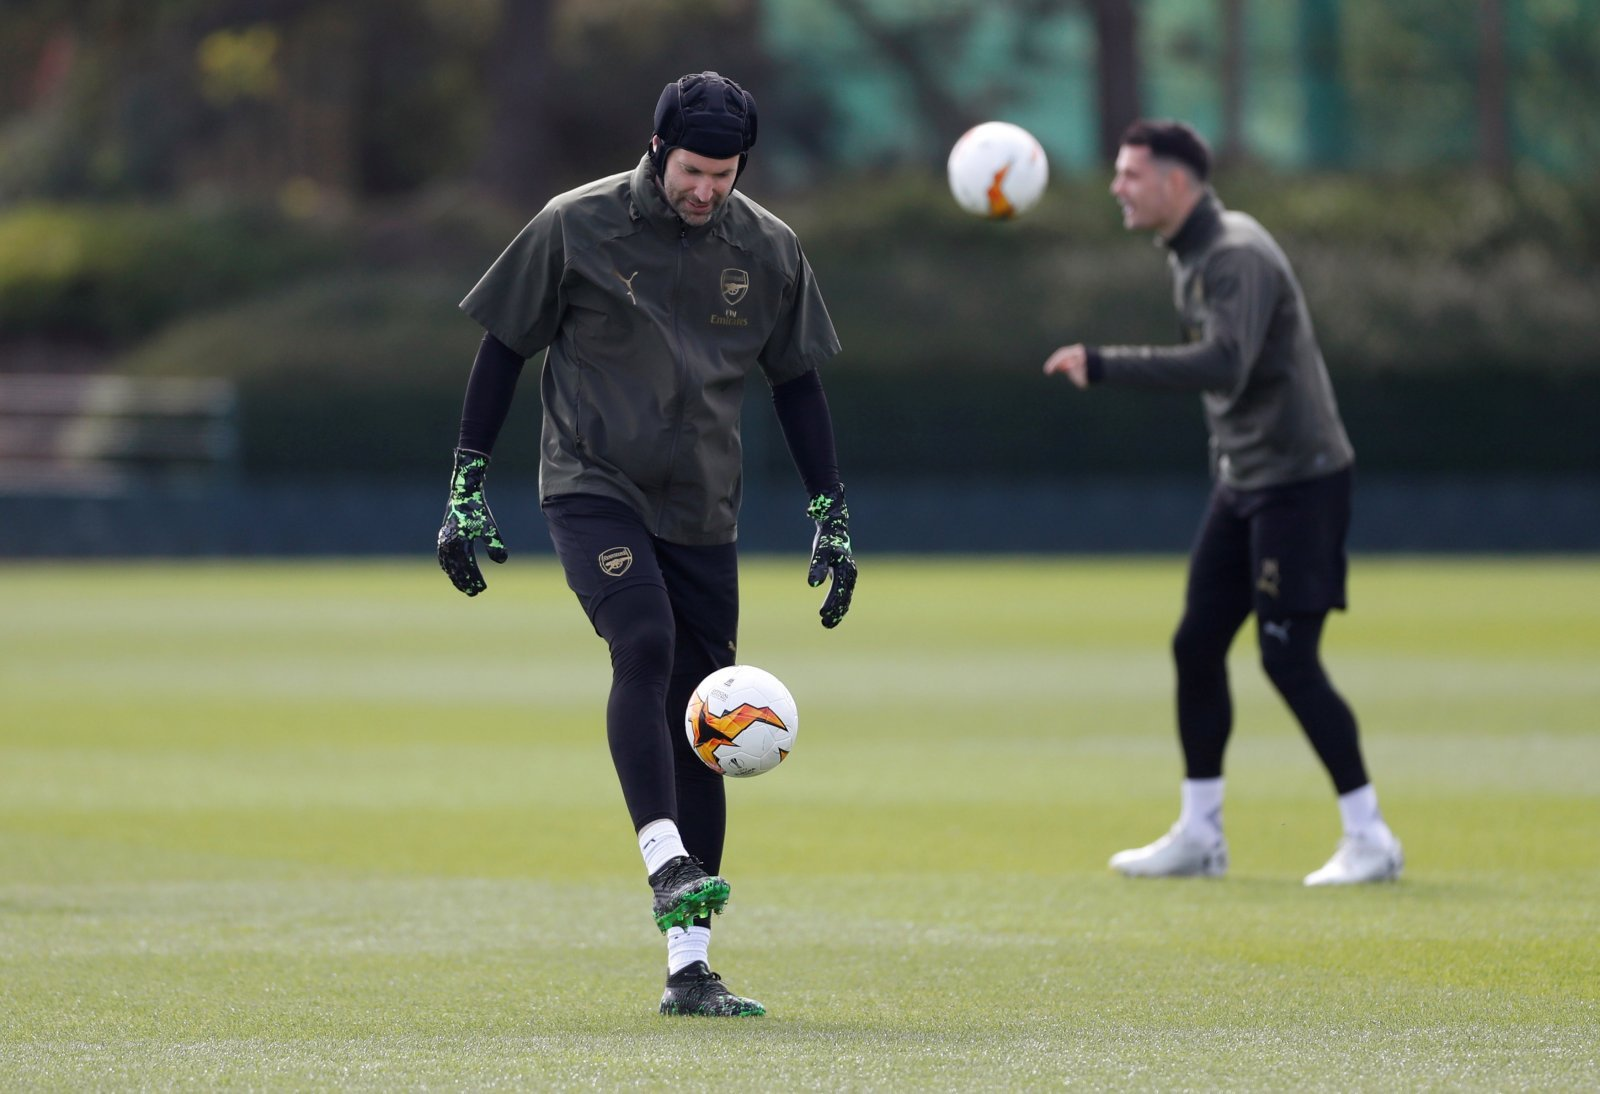 Arsenal: Unai Emery must not persist with the mistake of sticking with Petr Cech